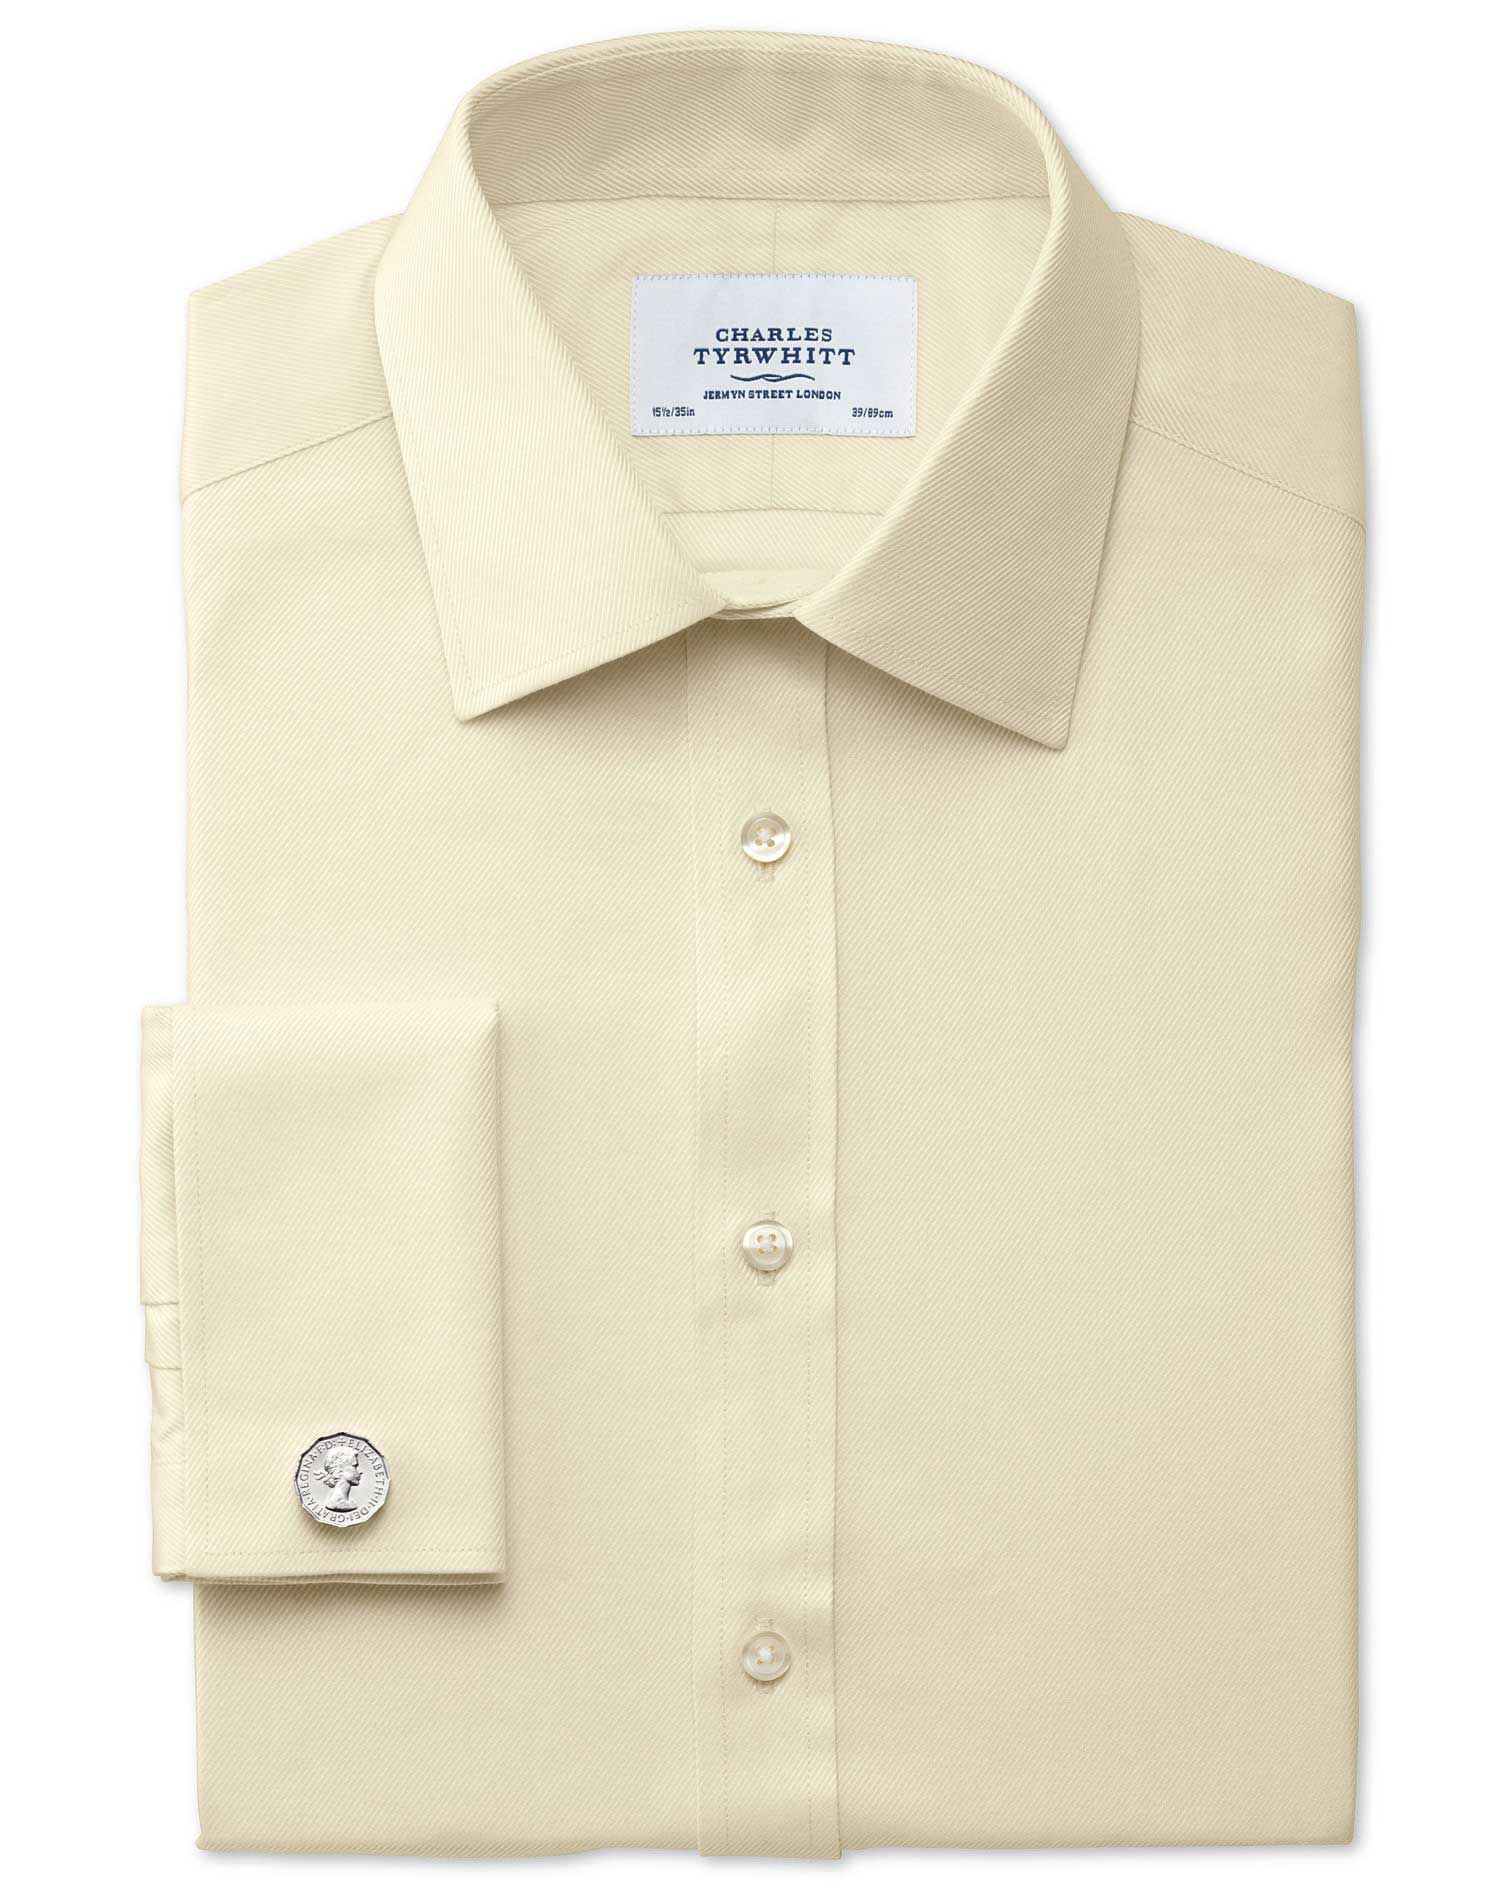 Slim Fit Egyptian Cotton Cavalry Twill Yellow Formal Shirt Single Cuff Size 15.5/37 by Charles Tyrwh